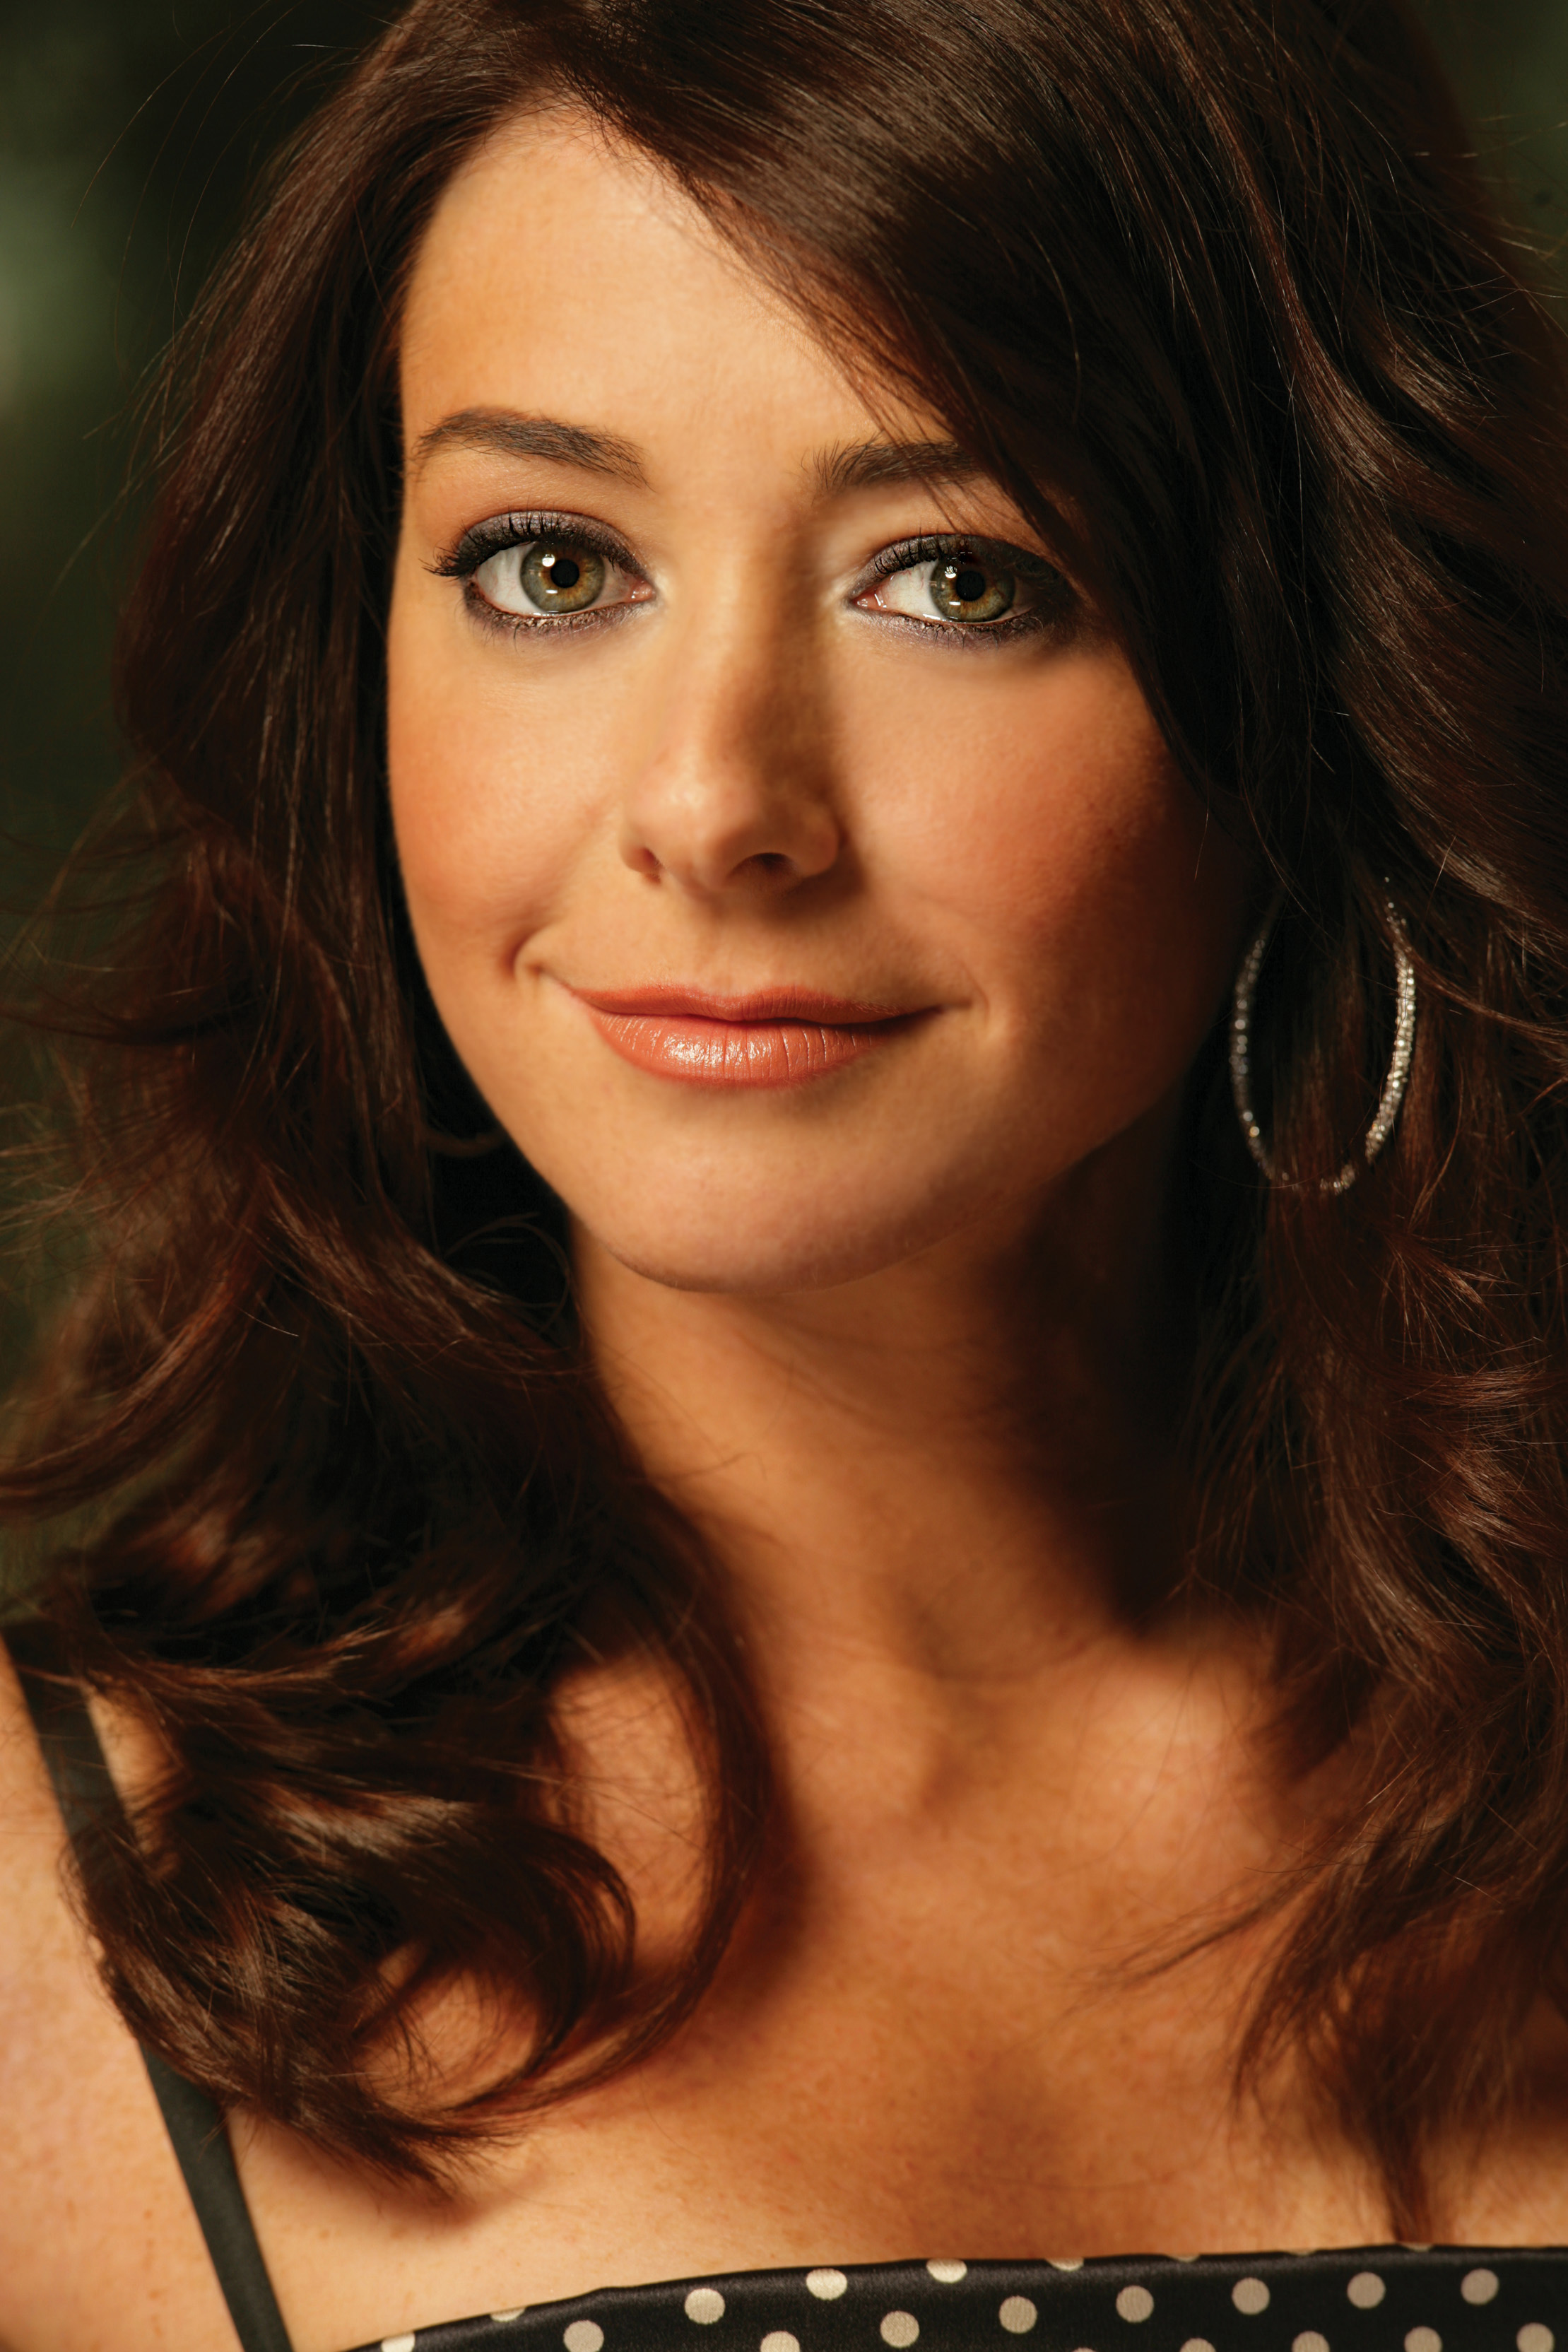 How I Met Your Mother, Alyson Hannigan as Lily Aldrin ...